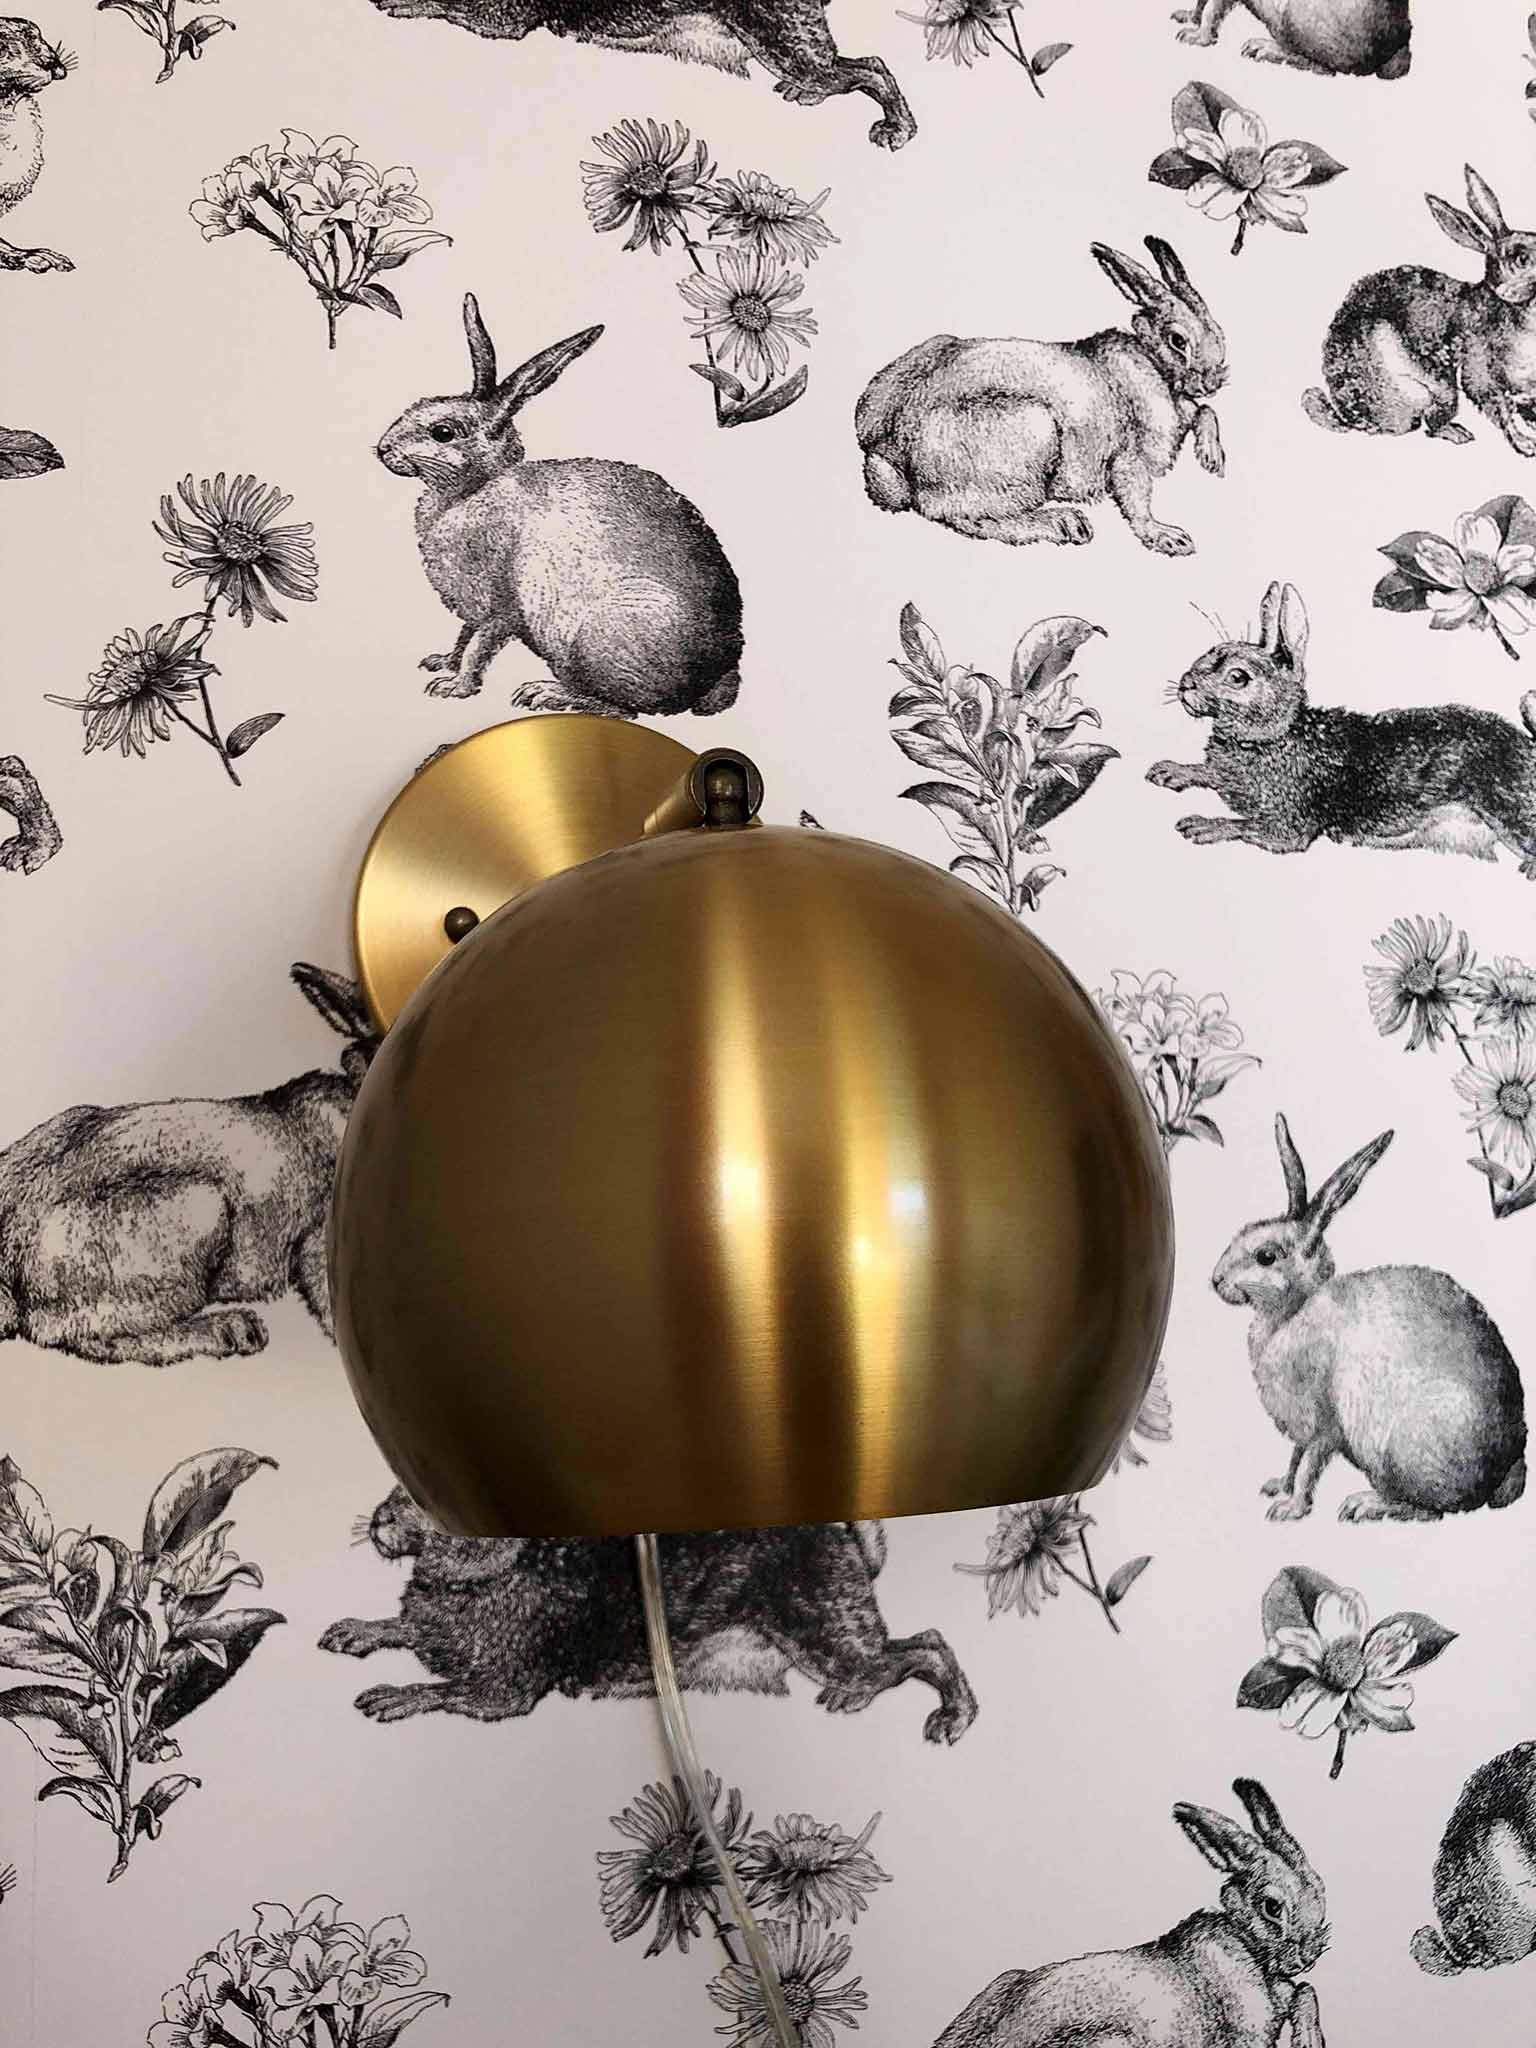 Gold wall lamps and rabbit wallpaper - Guest Participant of the One Room Challenge - That Homebird Life Blog